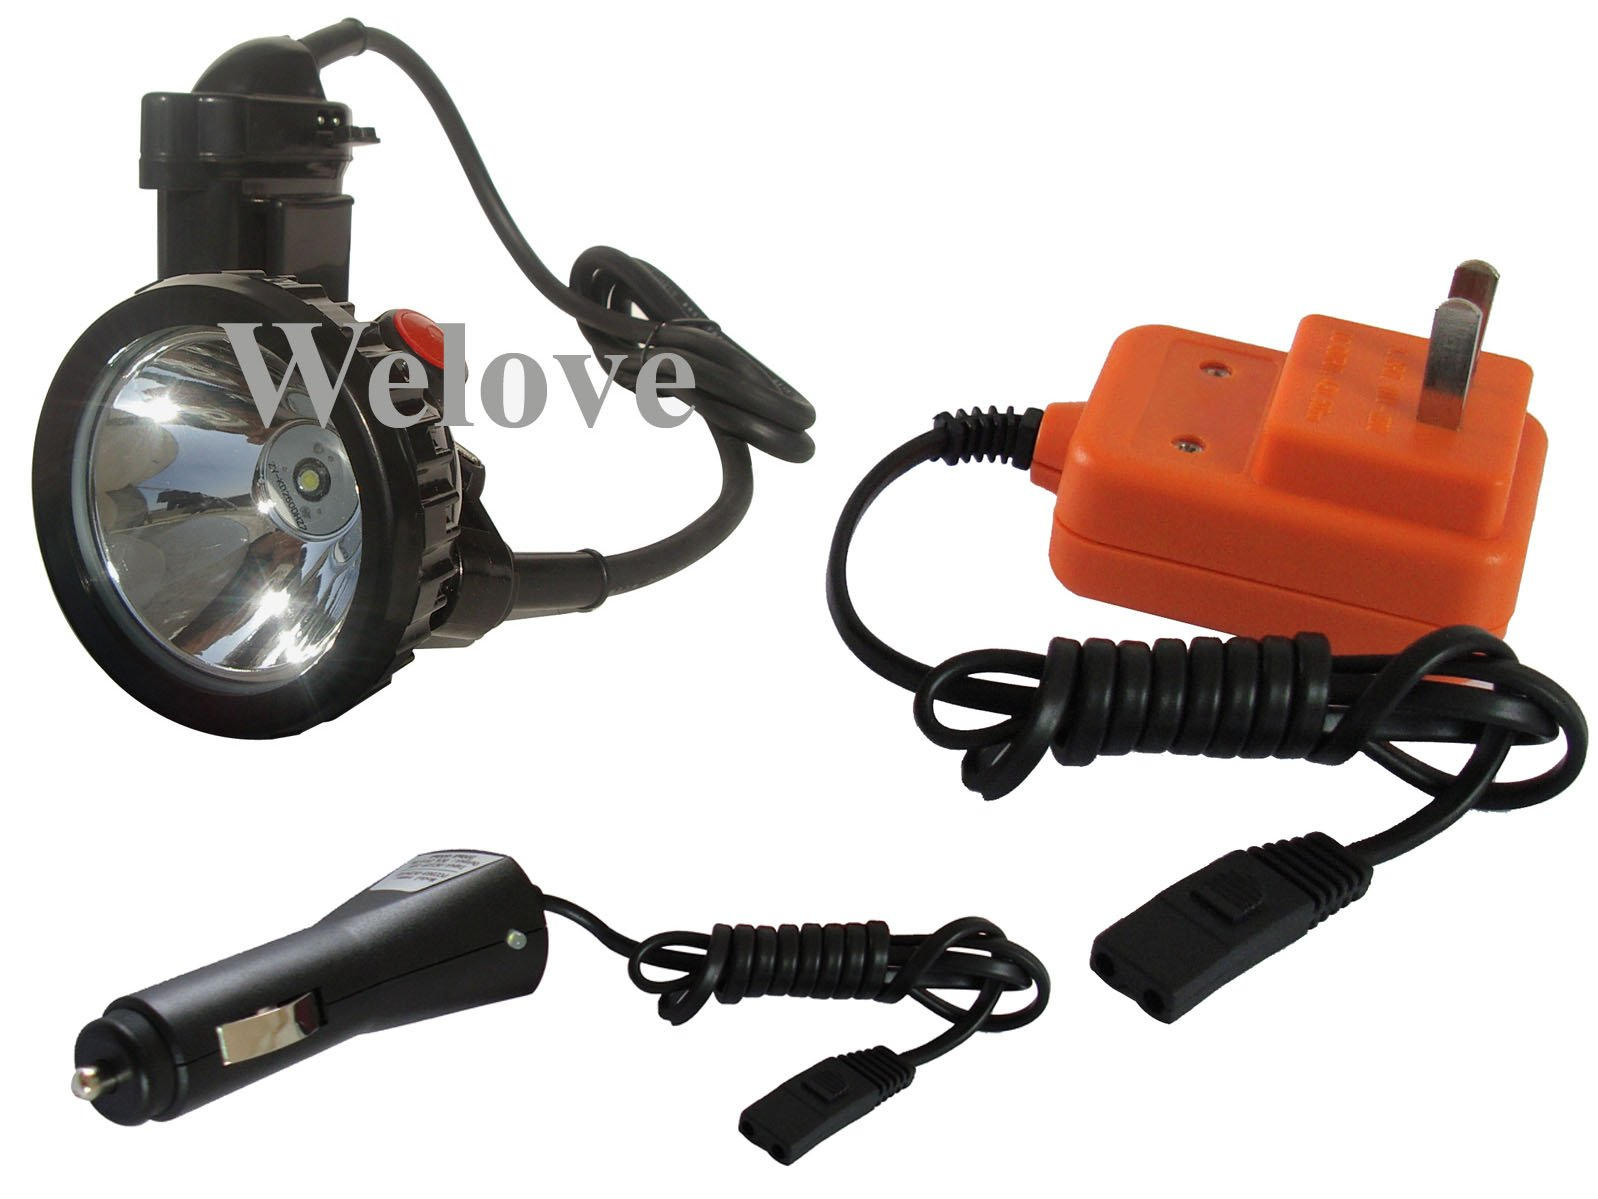 LED Mining Light Headlamp med batterioplader Gratis - Bærbar belysning